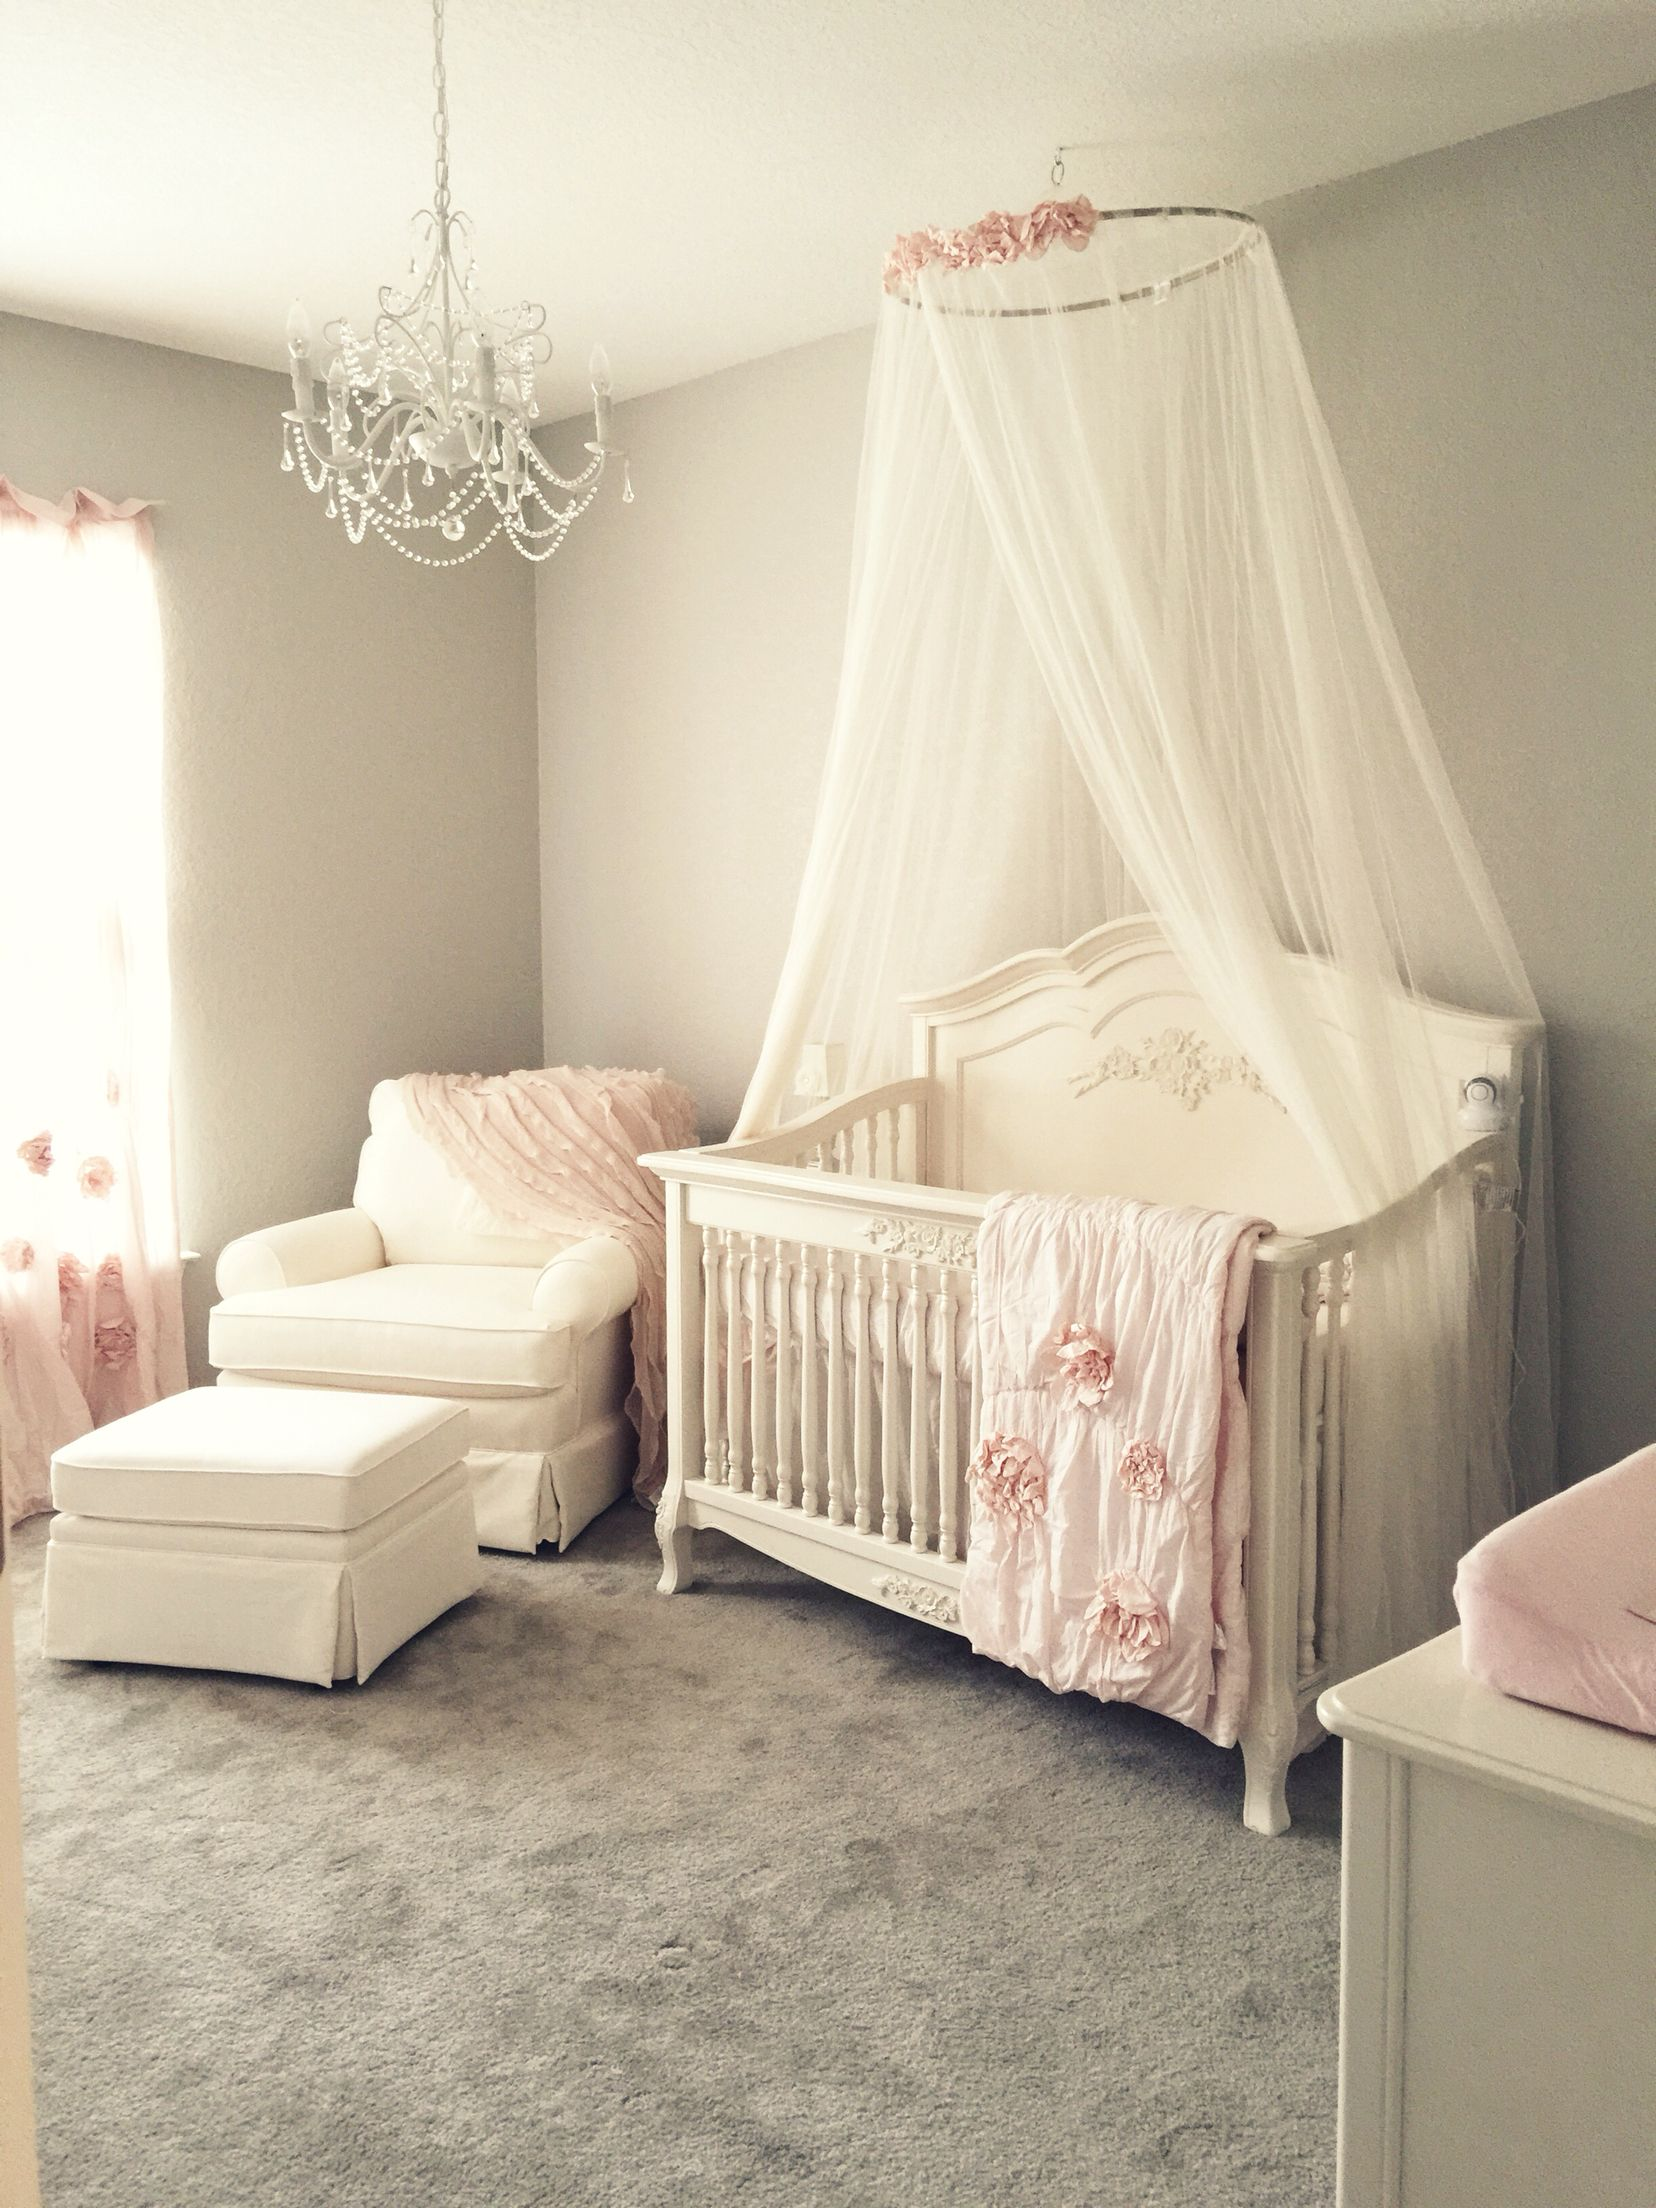 Girly pink blush nursery with chandelier ivory rocker and glider girly pink blush nursery with chandelier ivory rocker and glider ottoman and ivory crib canopy aloadofball Image collections